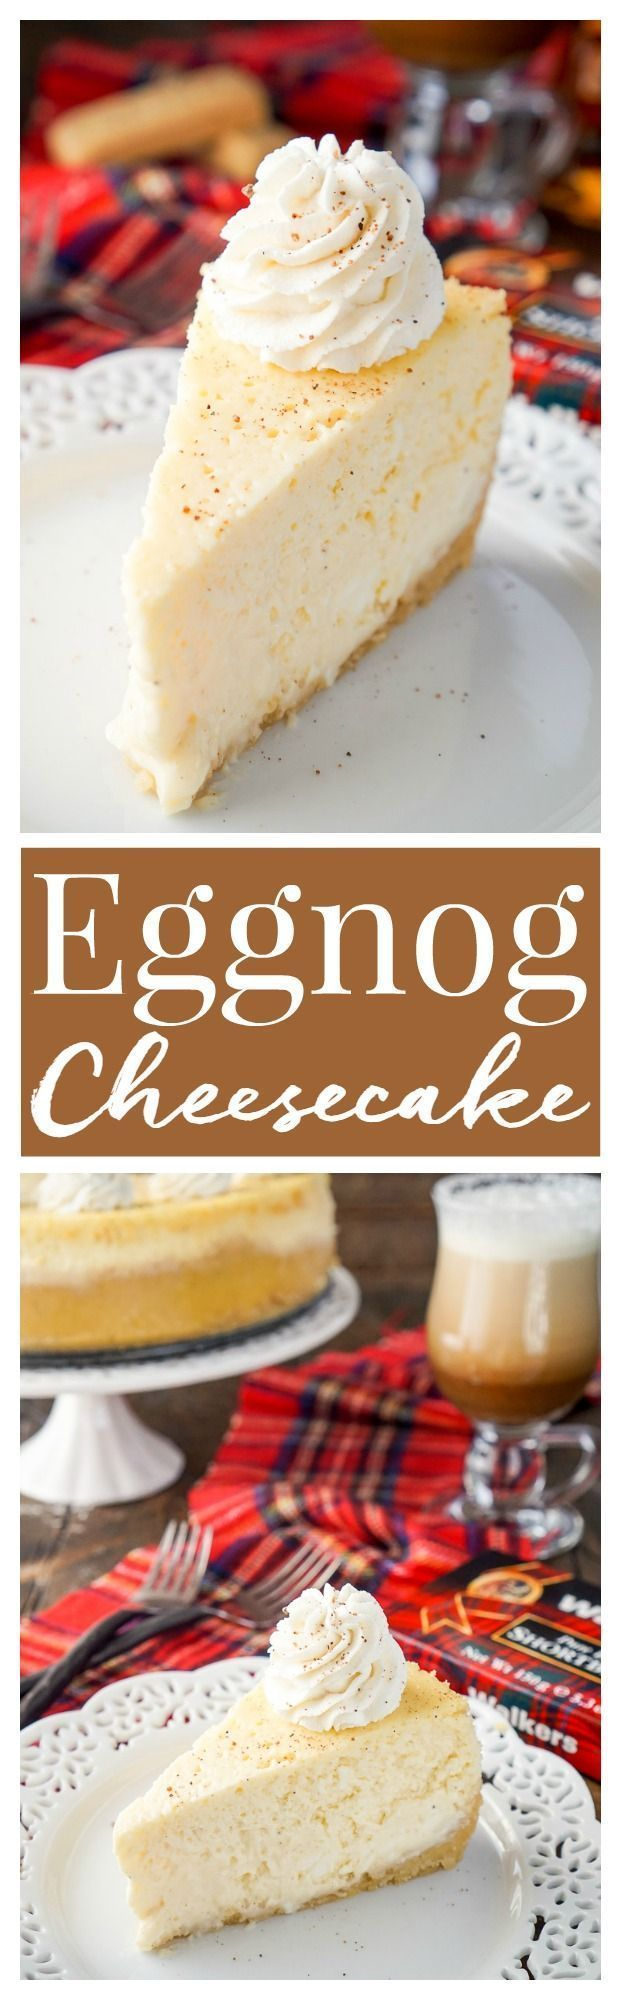 I loved this Eggnog Cheesecake! It's made with a sweet shortbread cookie crust instead of traditional graham crackers and is laced with whisky and nutmeg! I love how festive it is with a unique touch to impress guests! @Walkers Shortbread USA #sp